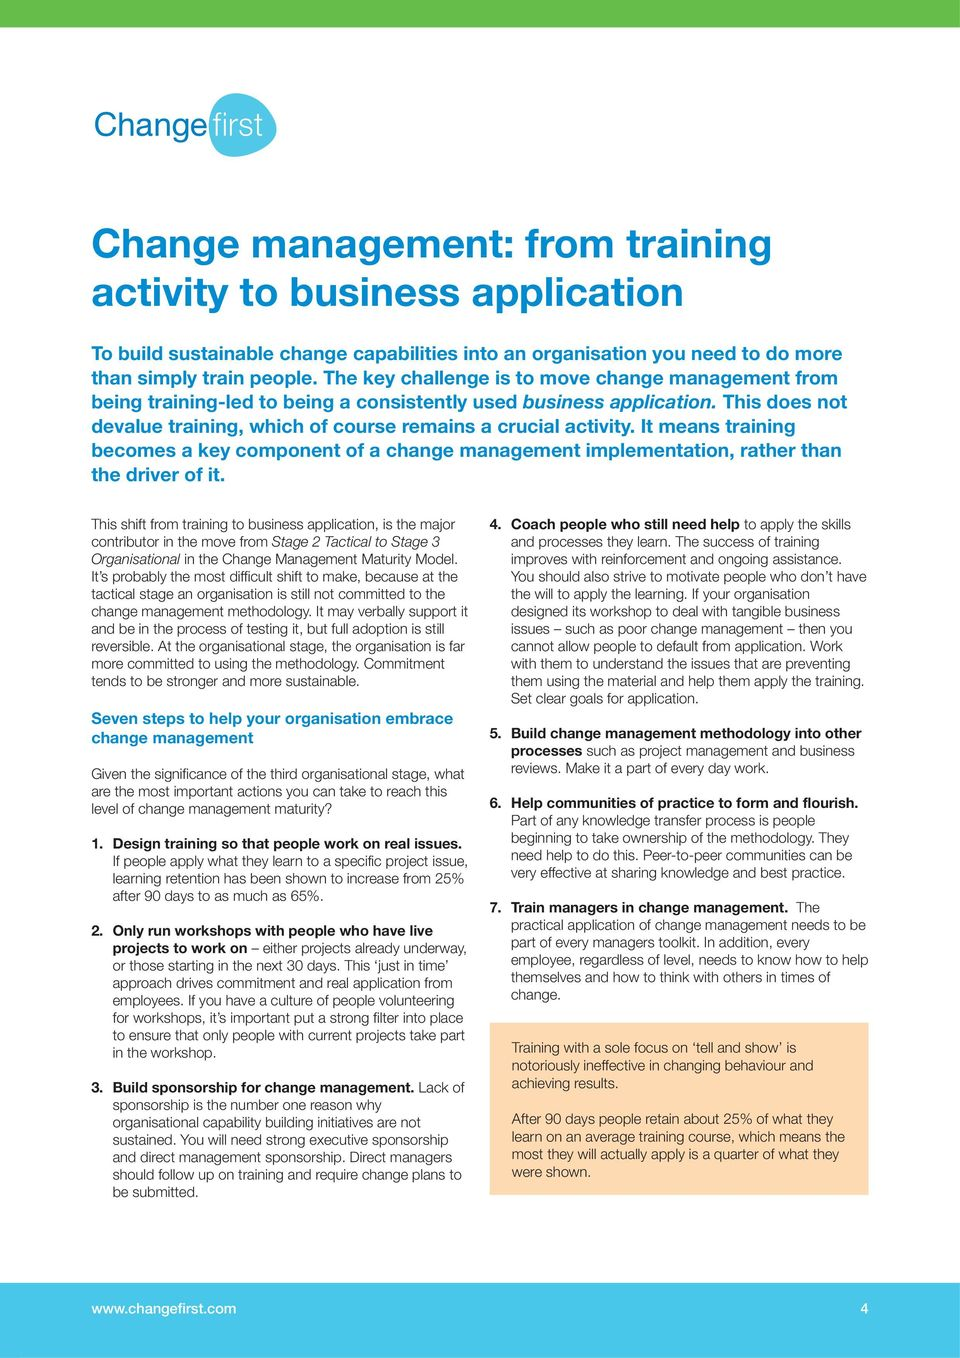 It means training becomes a key component of a change management implementation, rather than the driver of it.